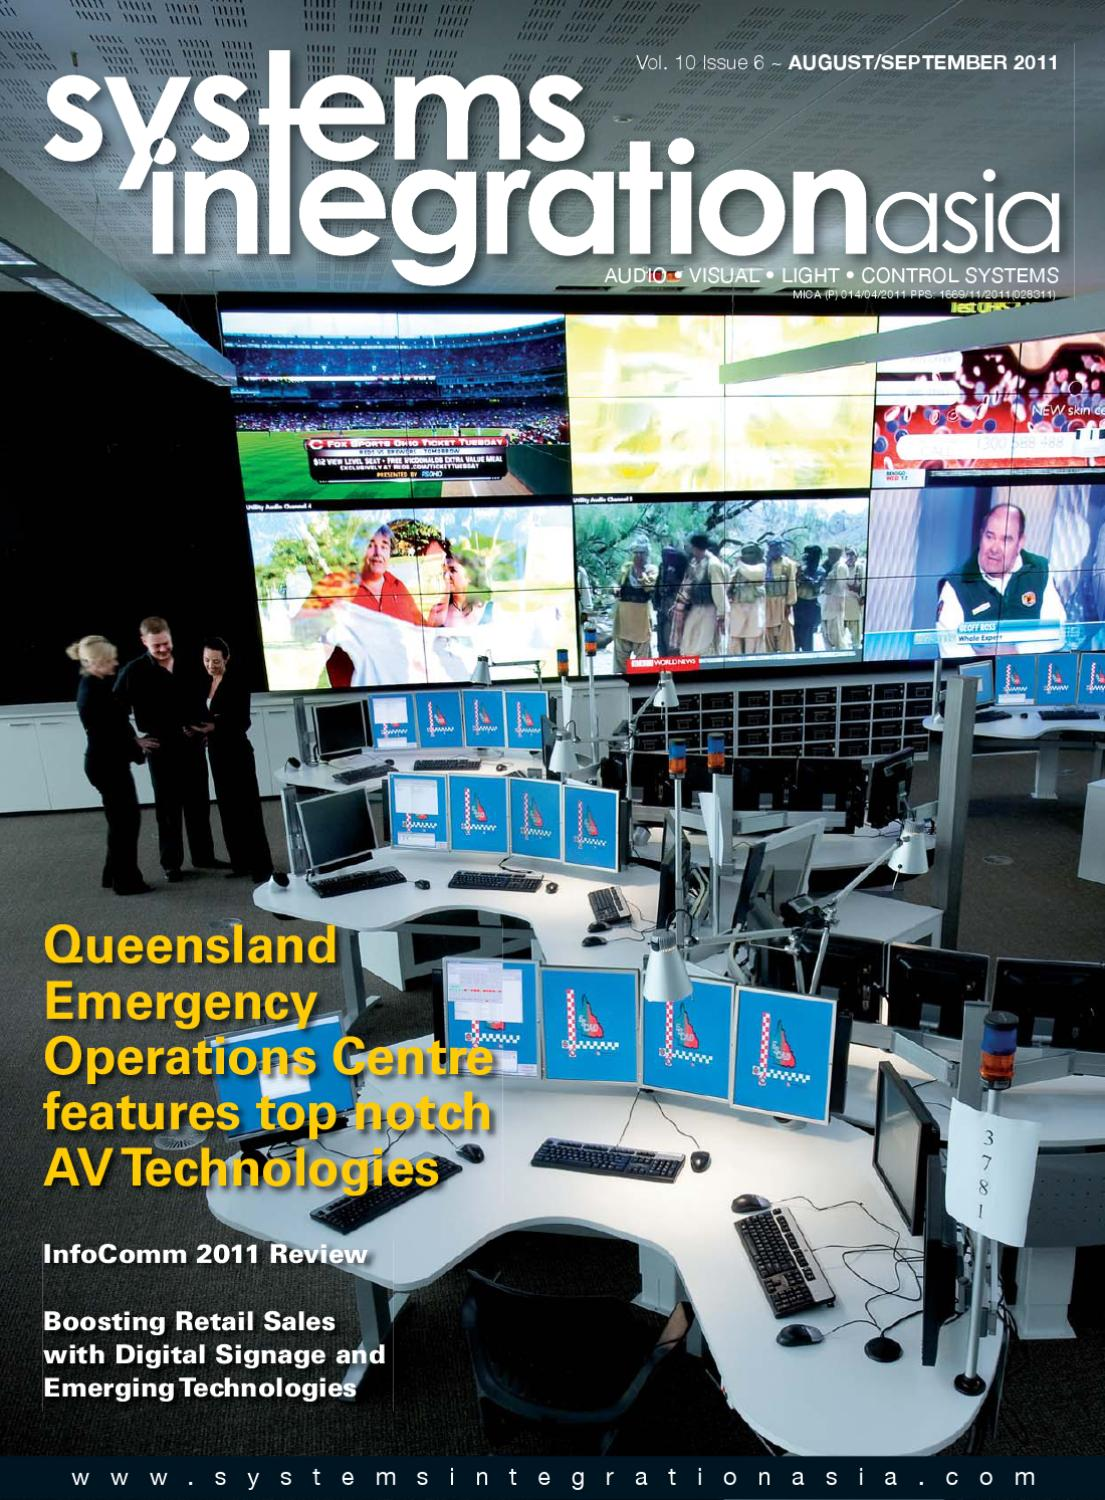 Systems integration asia august september 2011 by spinworkz pte ltd issuu